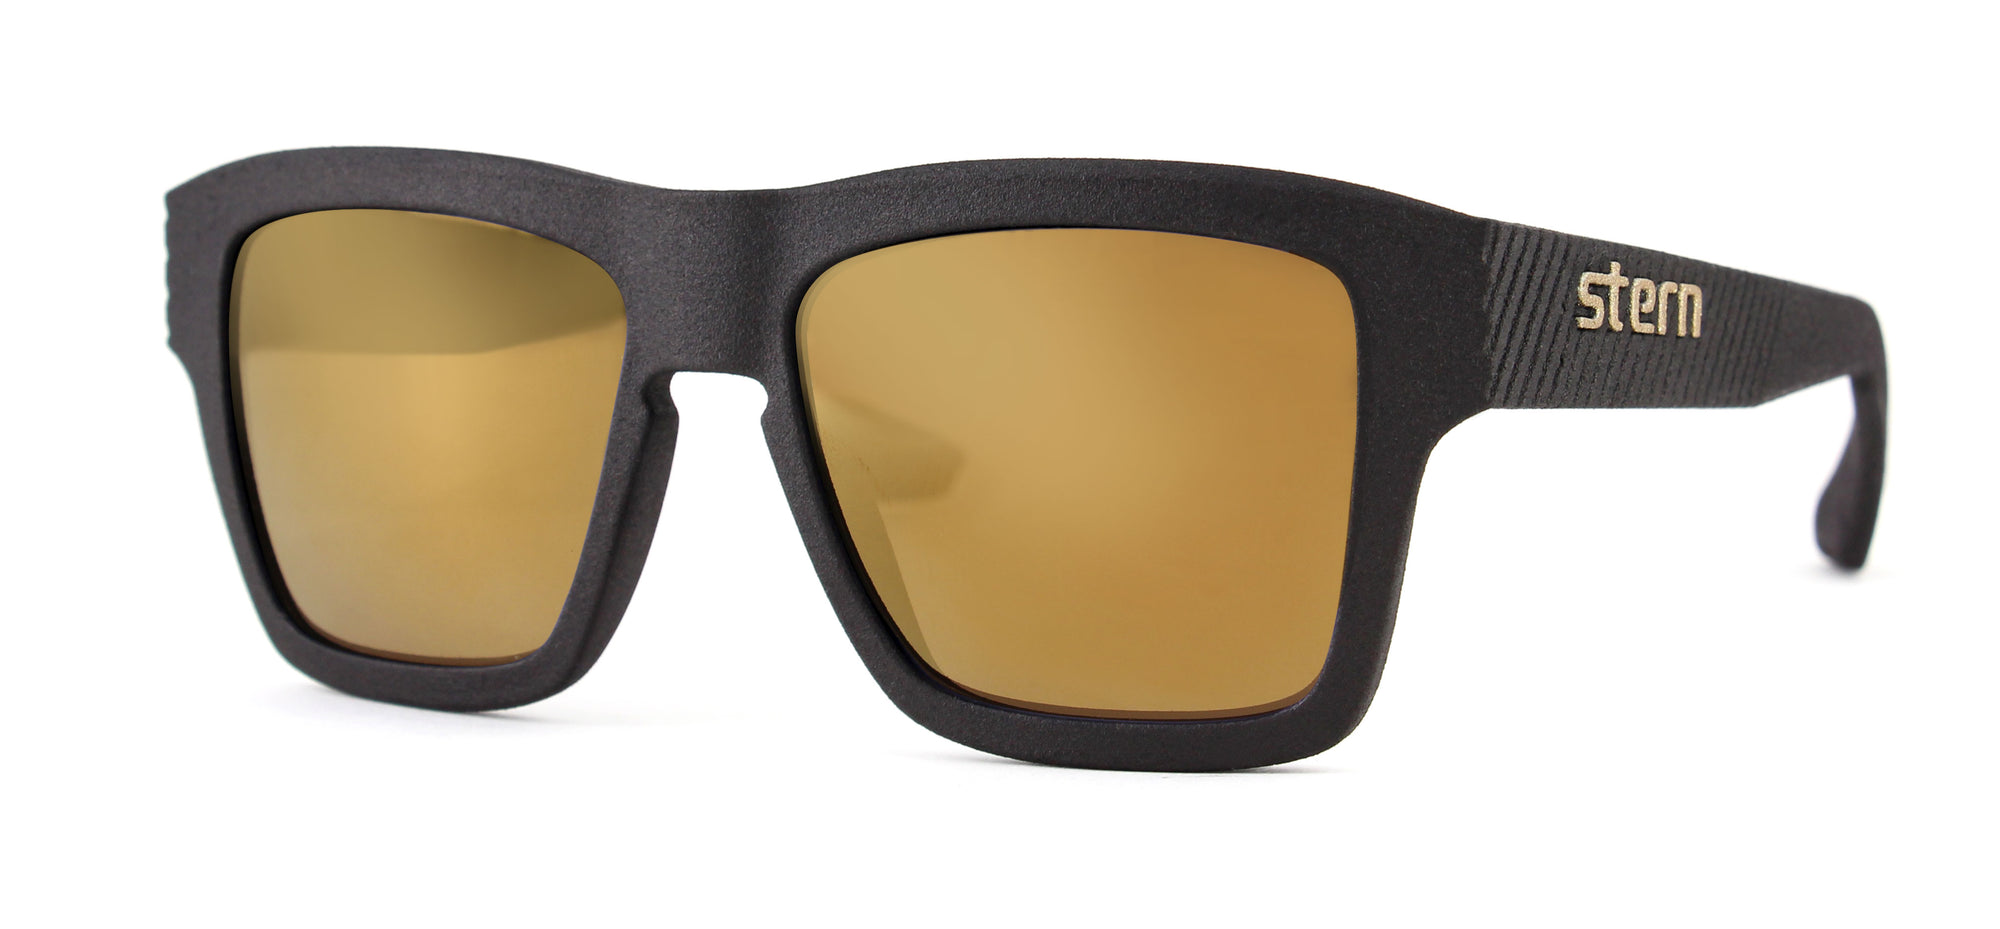 Polarized sunglasses with brown tinted lenses with gold flash mirror that block out harmful UV420 rays. Sunglasses are made in the USA with laser fusion 3D printing.